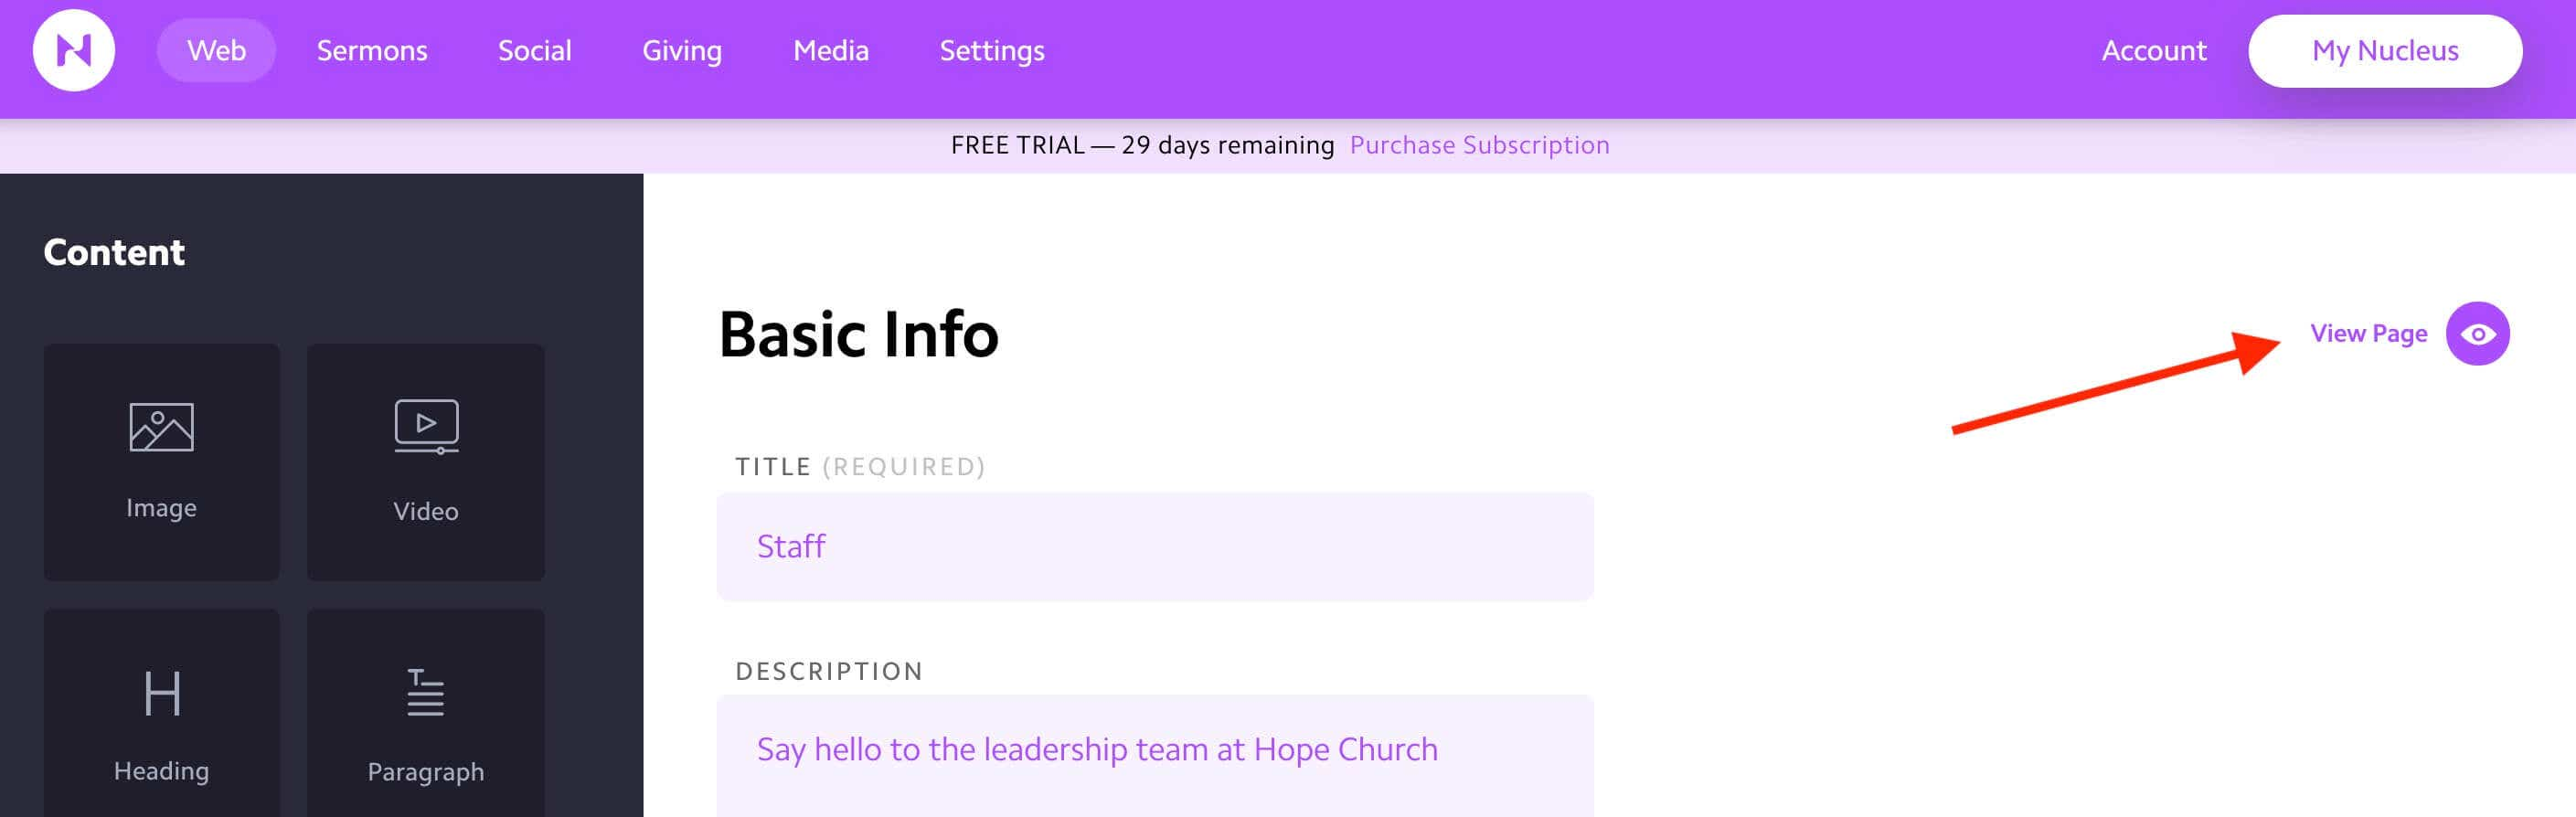 how to build a church website with nucleus